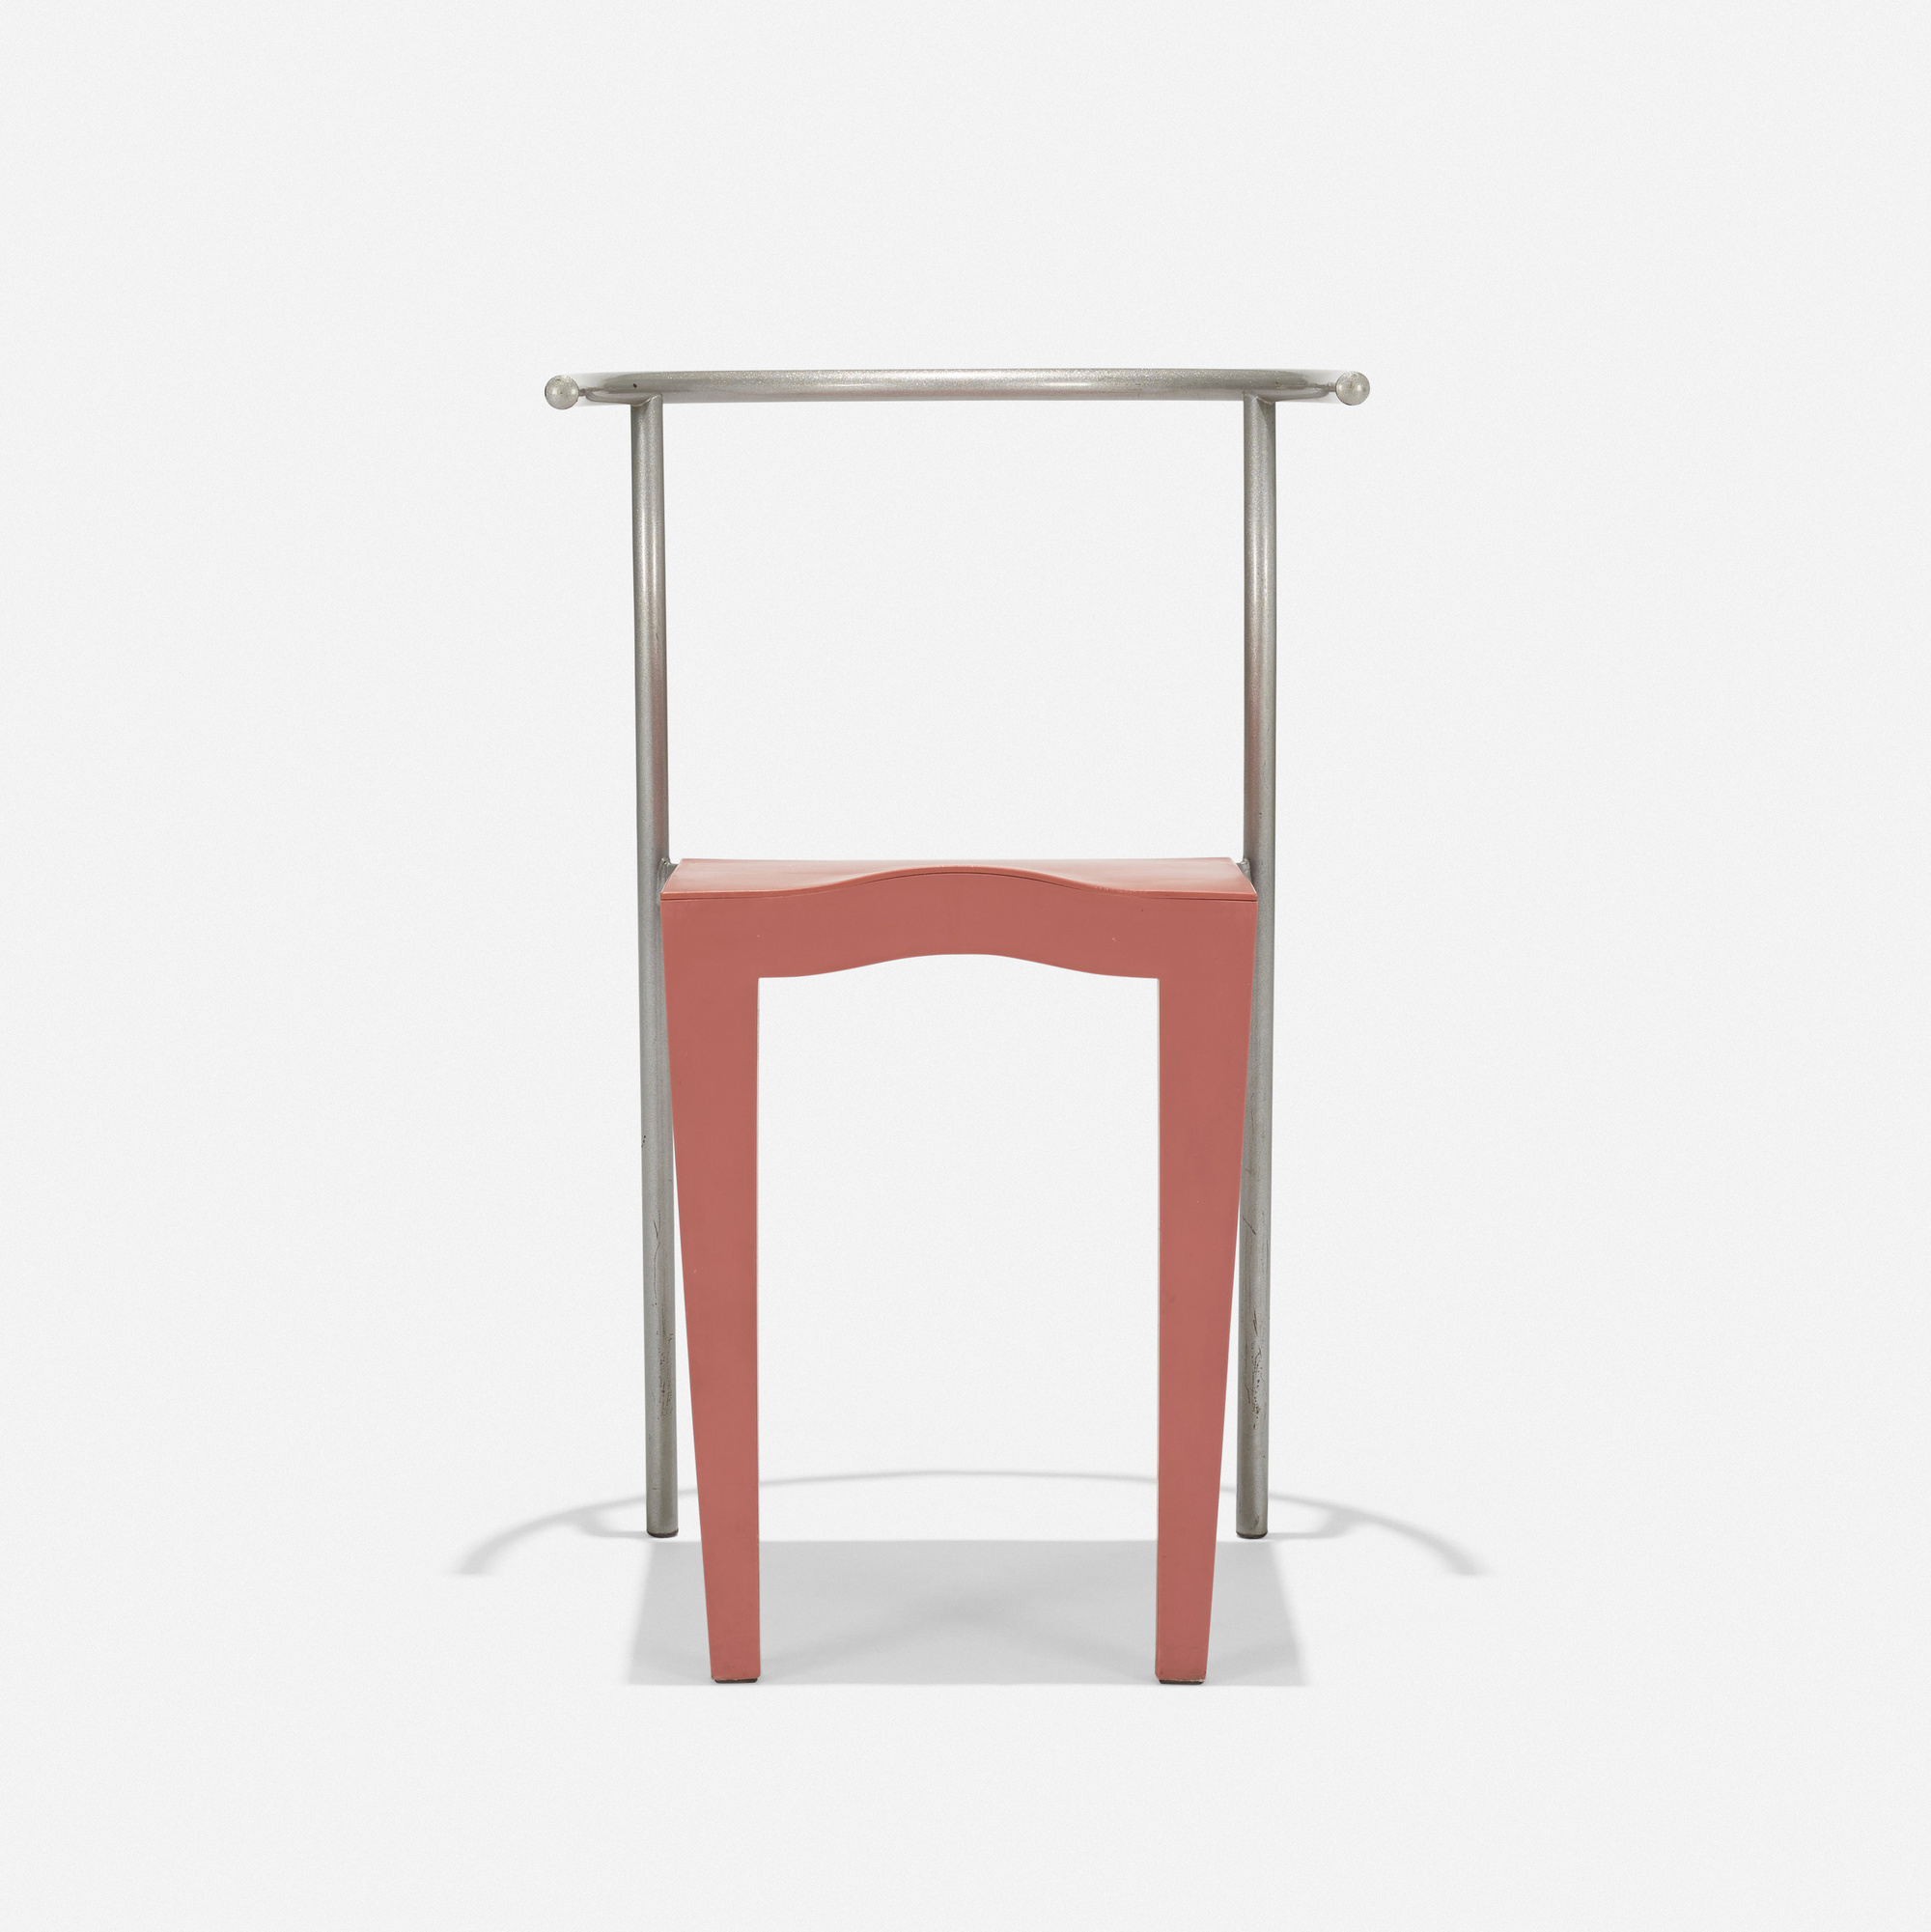 336: Philippe Starck / Dr. Glob chair (2 of 4)